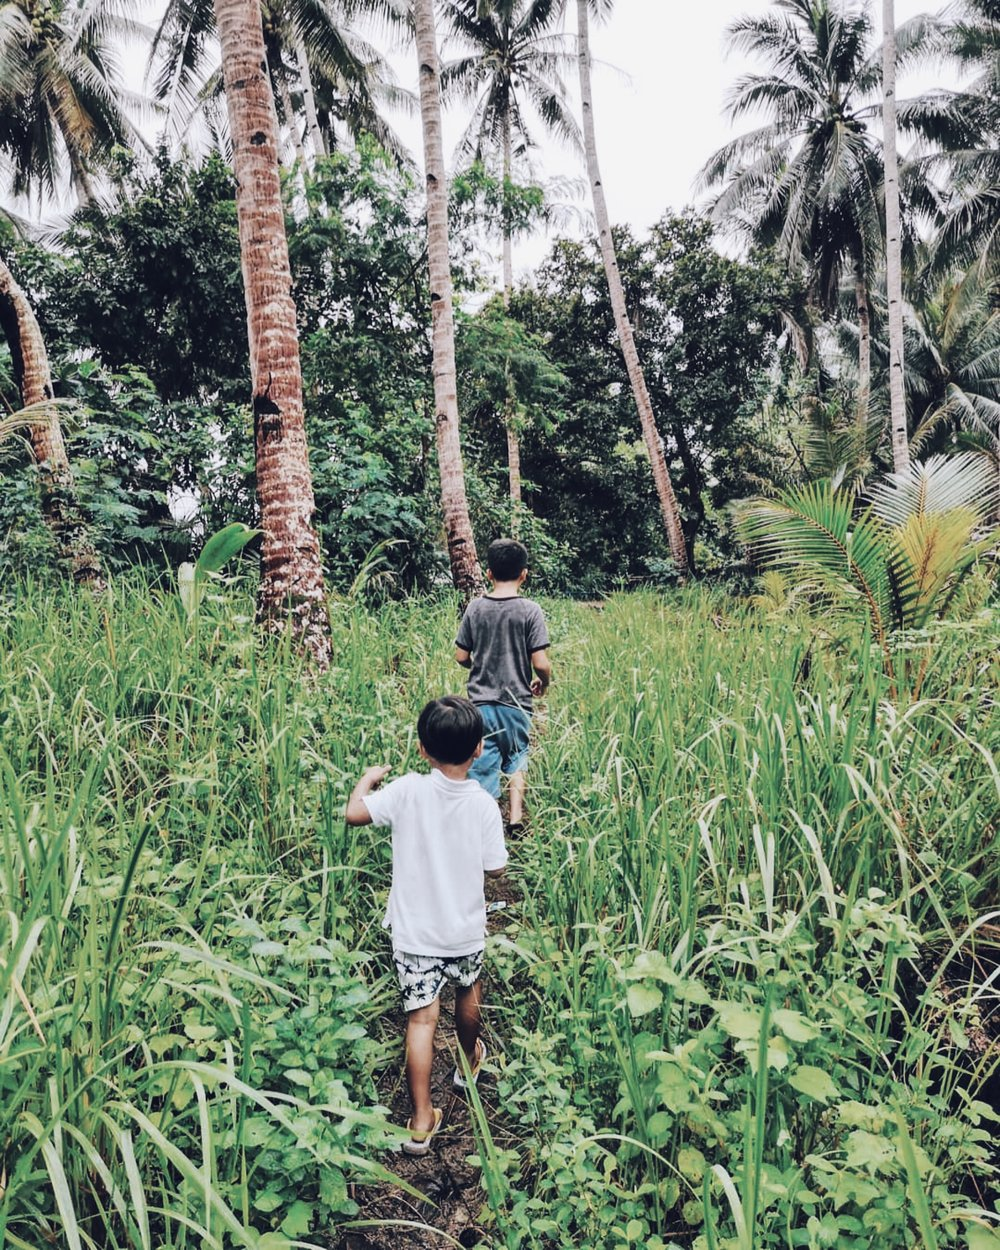 Unschooling on the Islands - By Monica Manzano